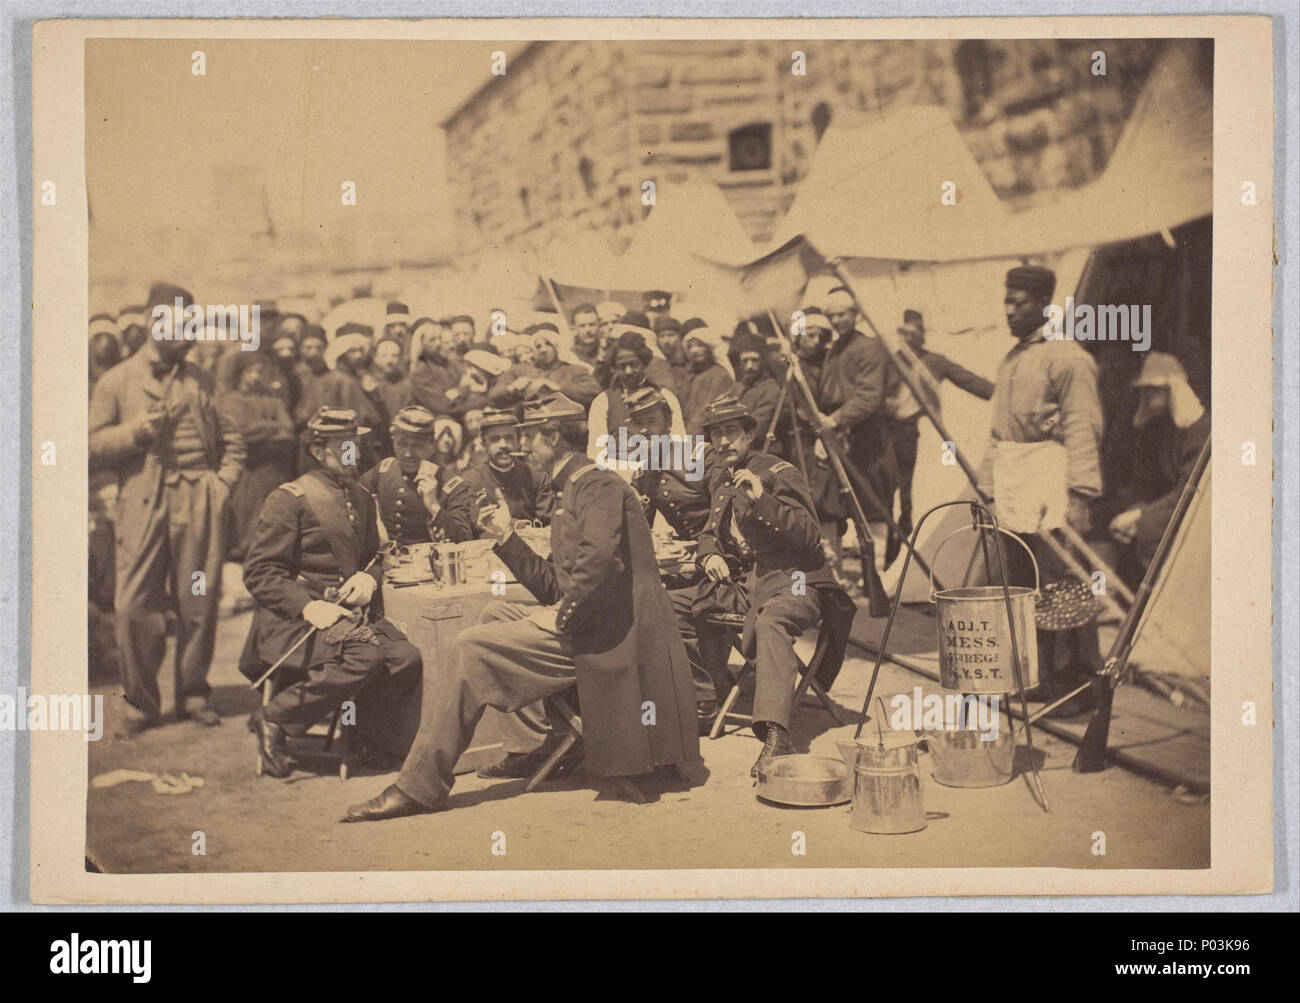 . English: Duryea Zouaves, Adjutant General Regimental Mess, Fort Schuyler, May 18, 1861. Metropolitan Museum of Art: Albumen silver print from glass negative, 5 9/16 x 7 1/2 Accession Number: 2005.100.1231 Provenance: Alfred R. Waud Collection, Civil War Illustrator   http://www.metmuseum.org/art/collection/search/285894 8 Duryea Zouaves, Regimental Mess, Fort Schuyler, May 18, 1861 - Stock Image